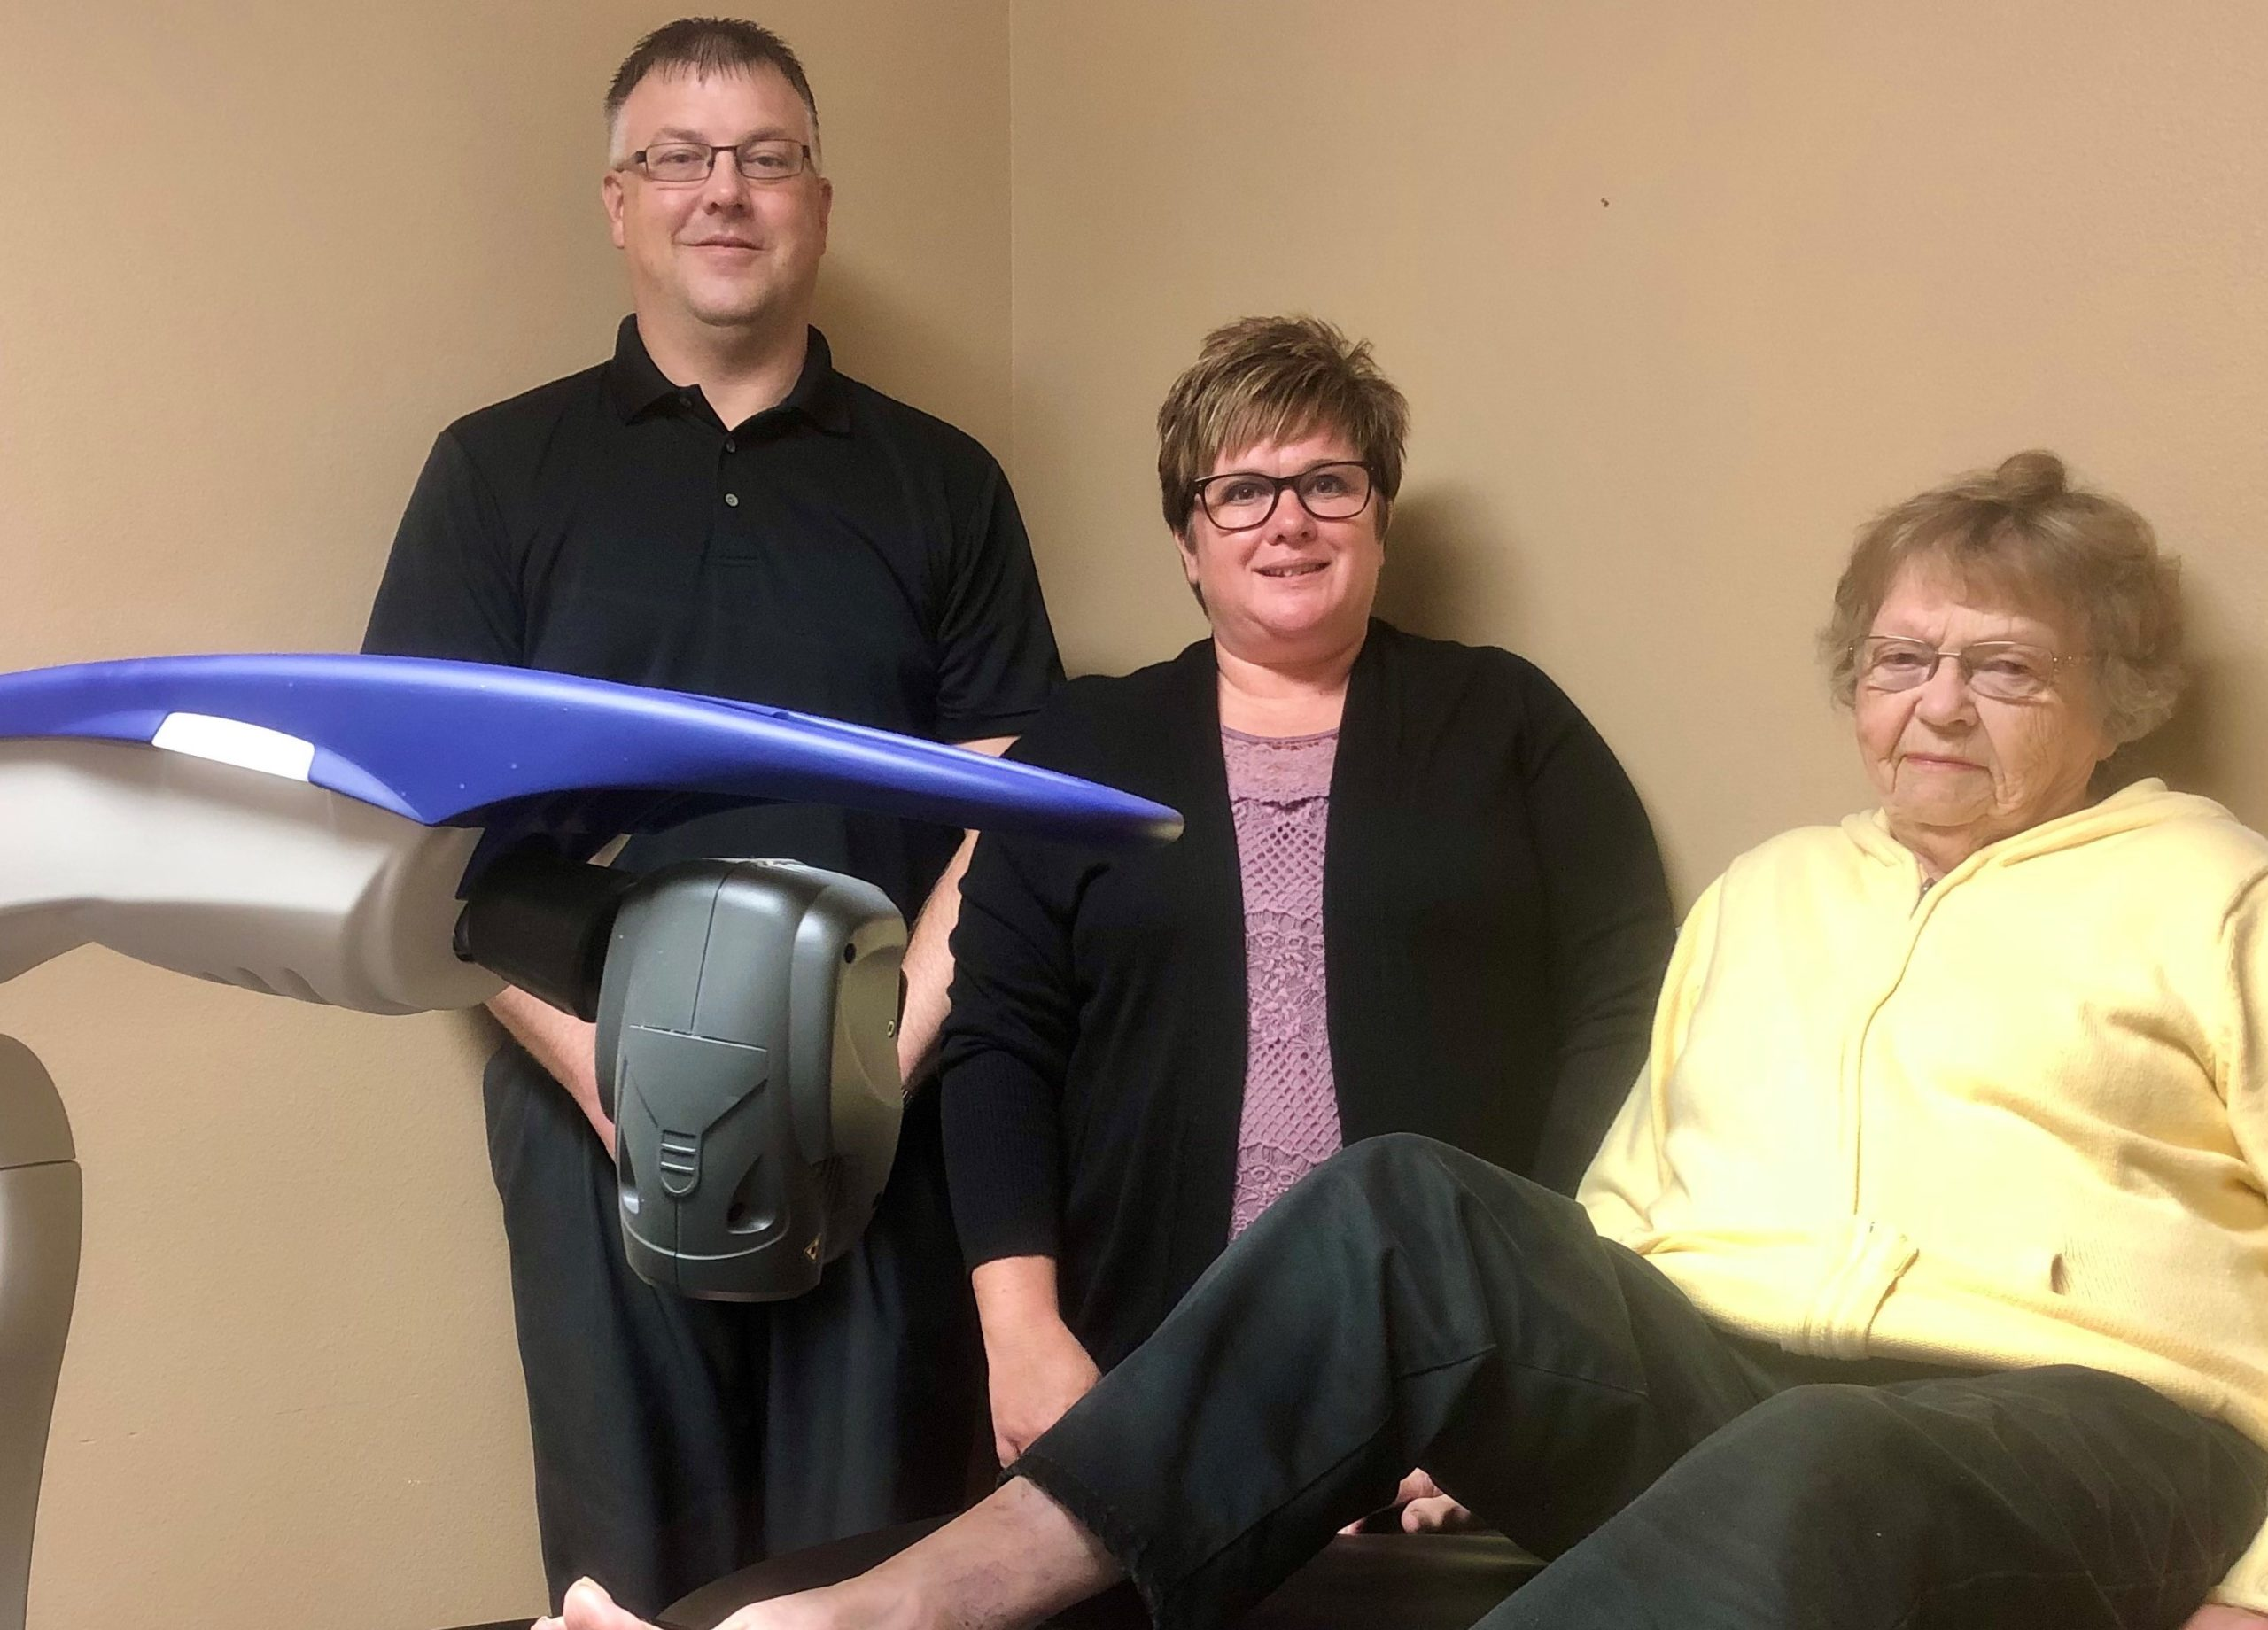 MLS Laser Therapy Plays a Key Role in Comprehensive Care for Chronic Pain